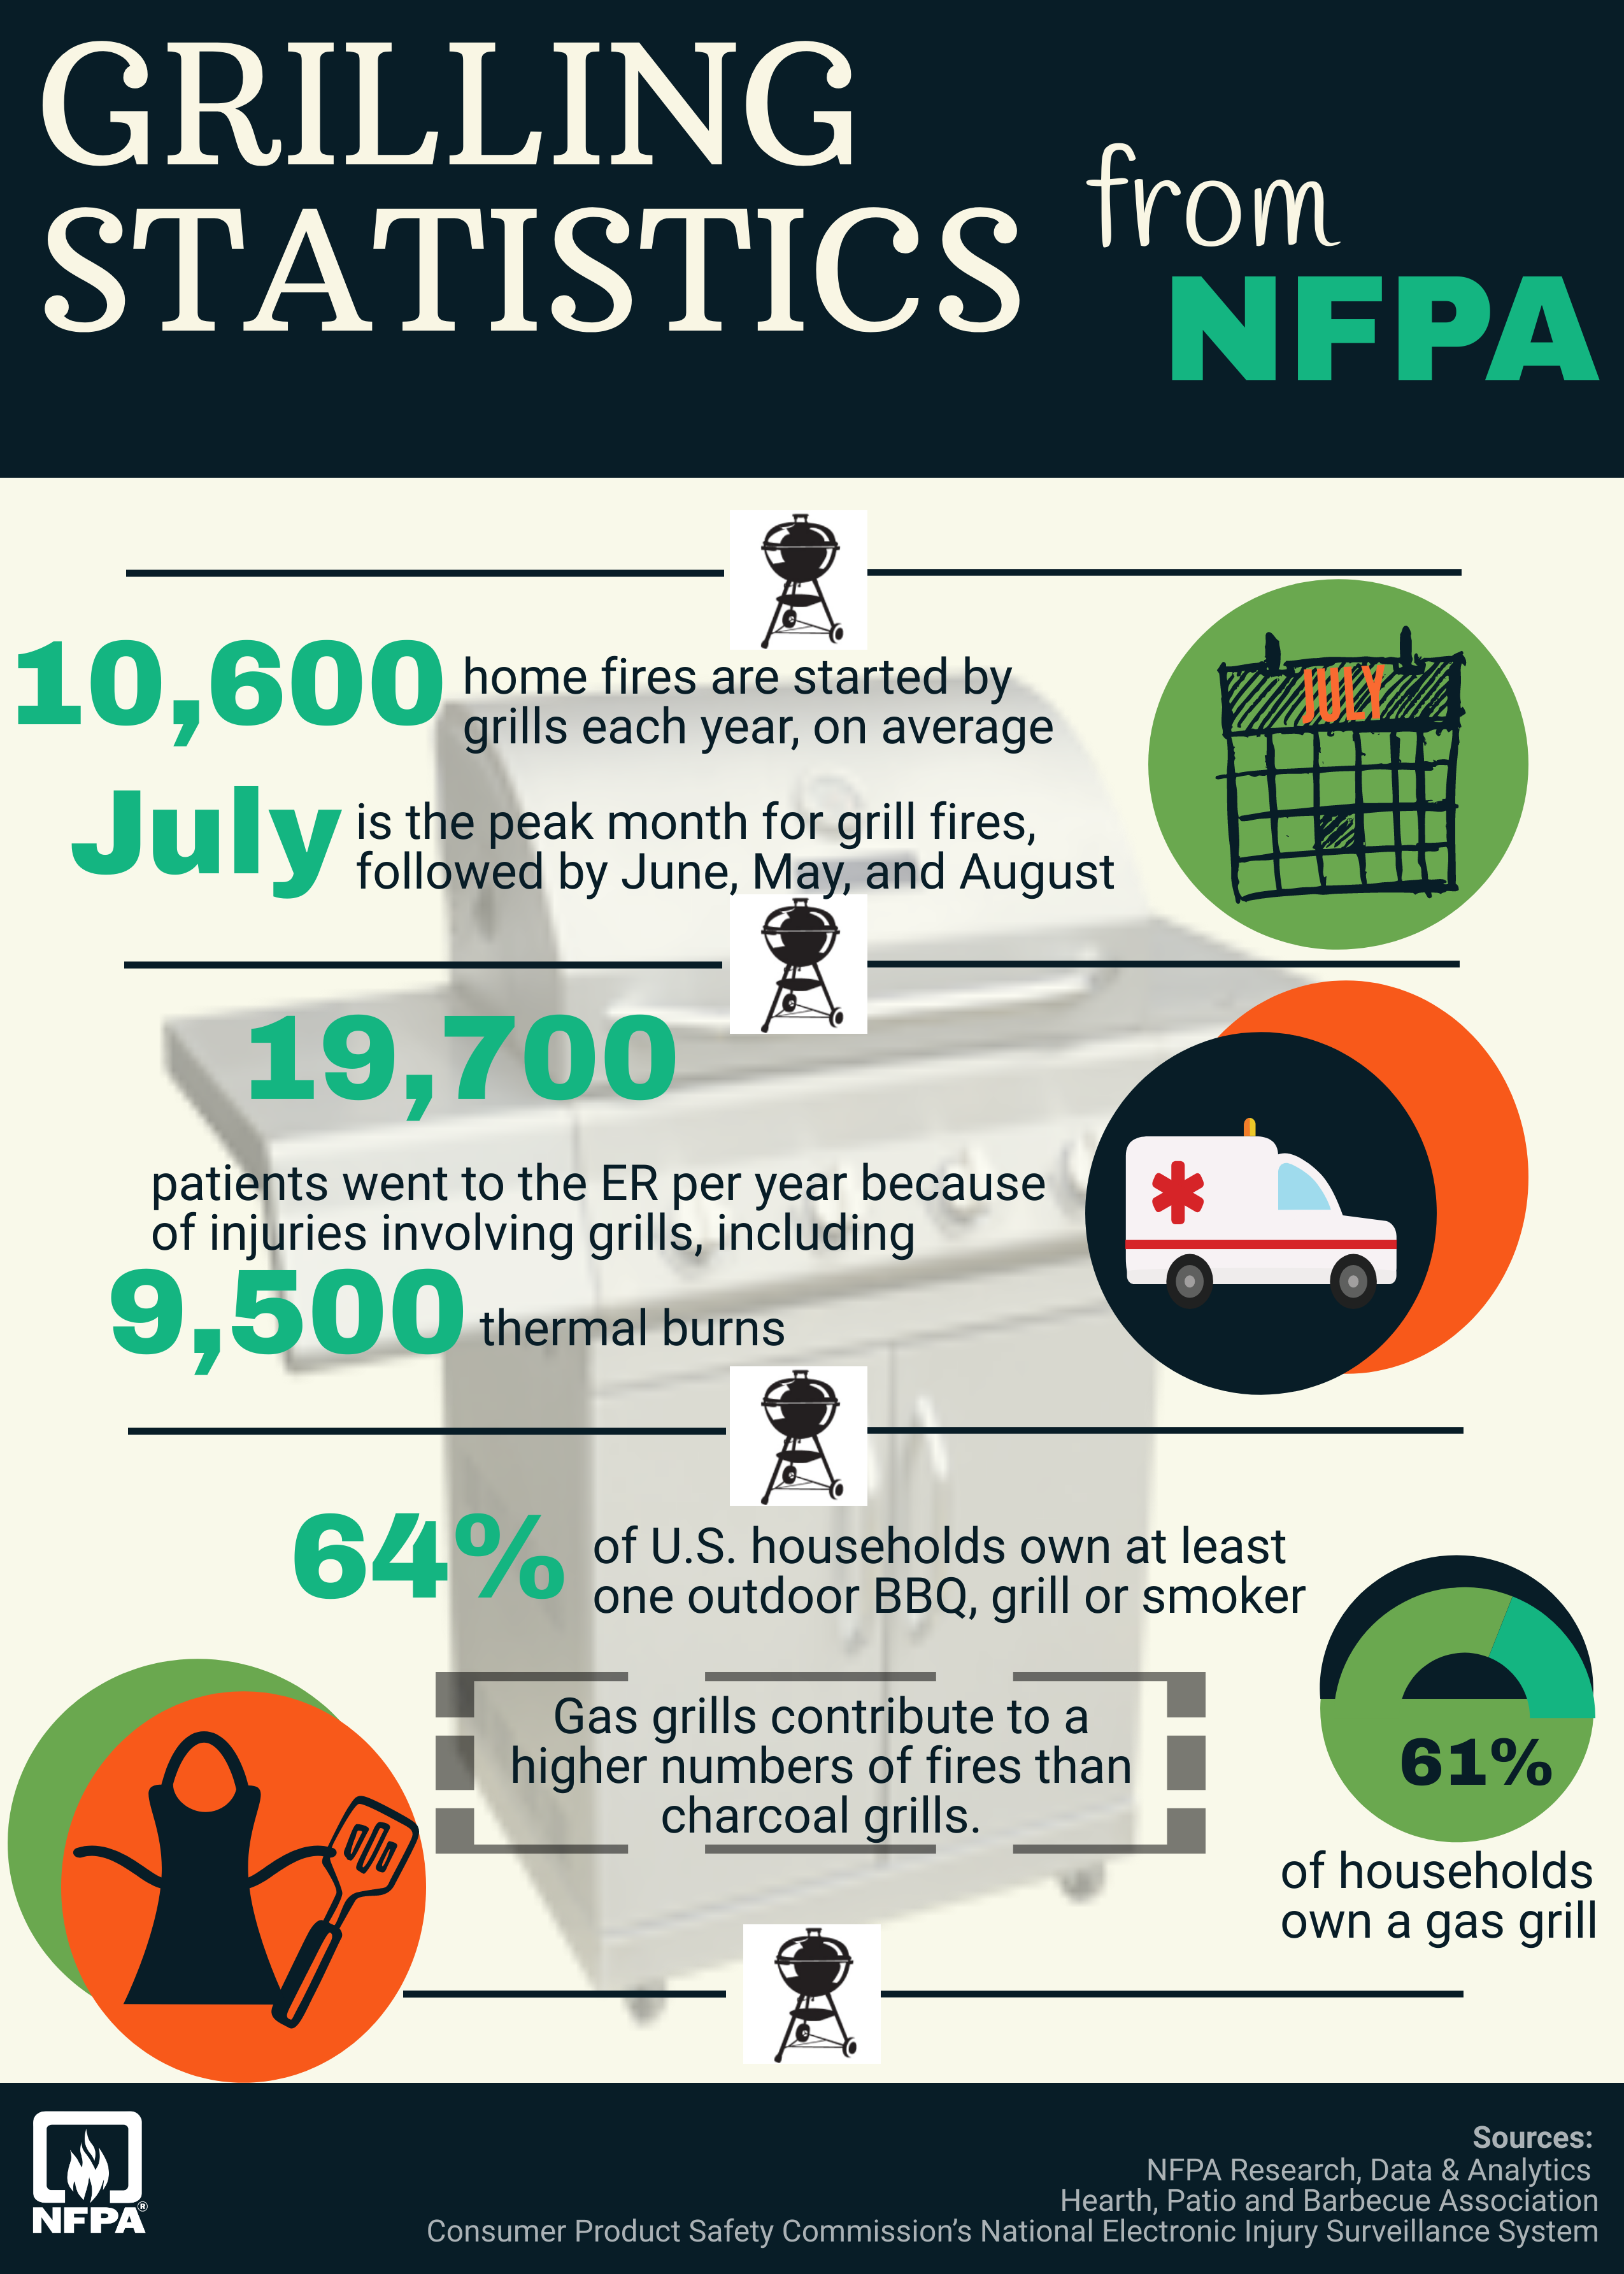 Grilling statistics from NFPA.